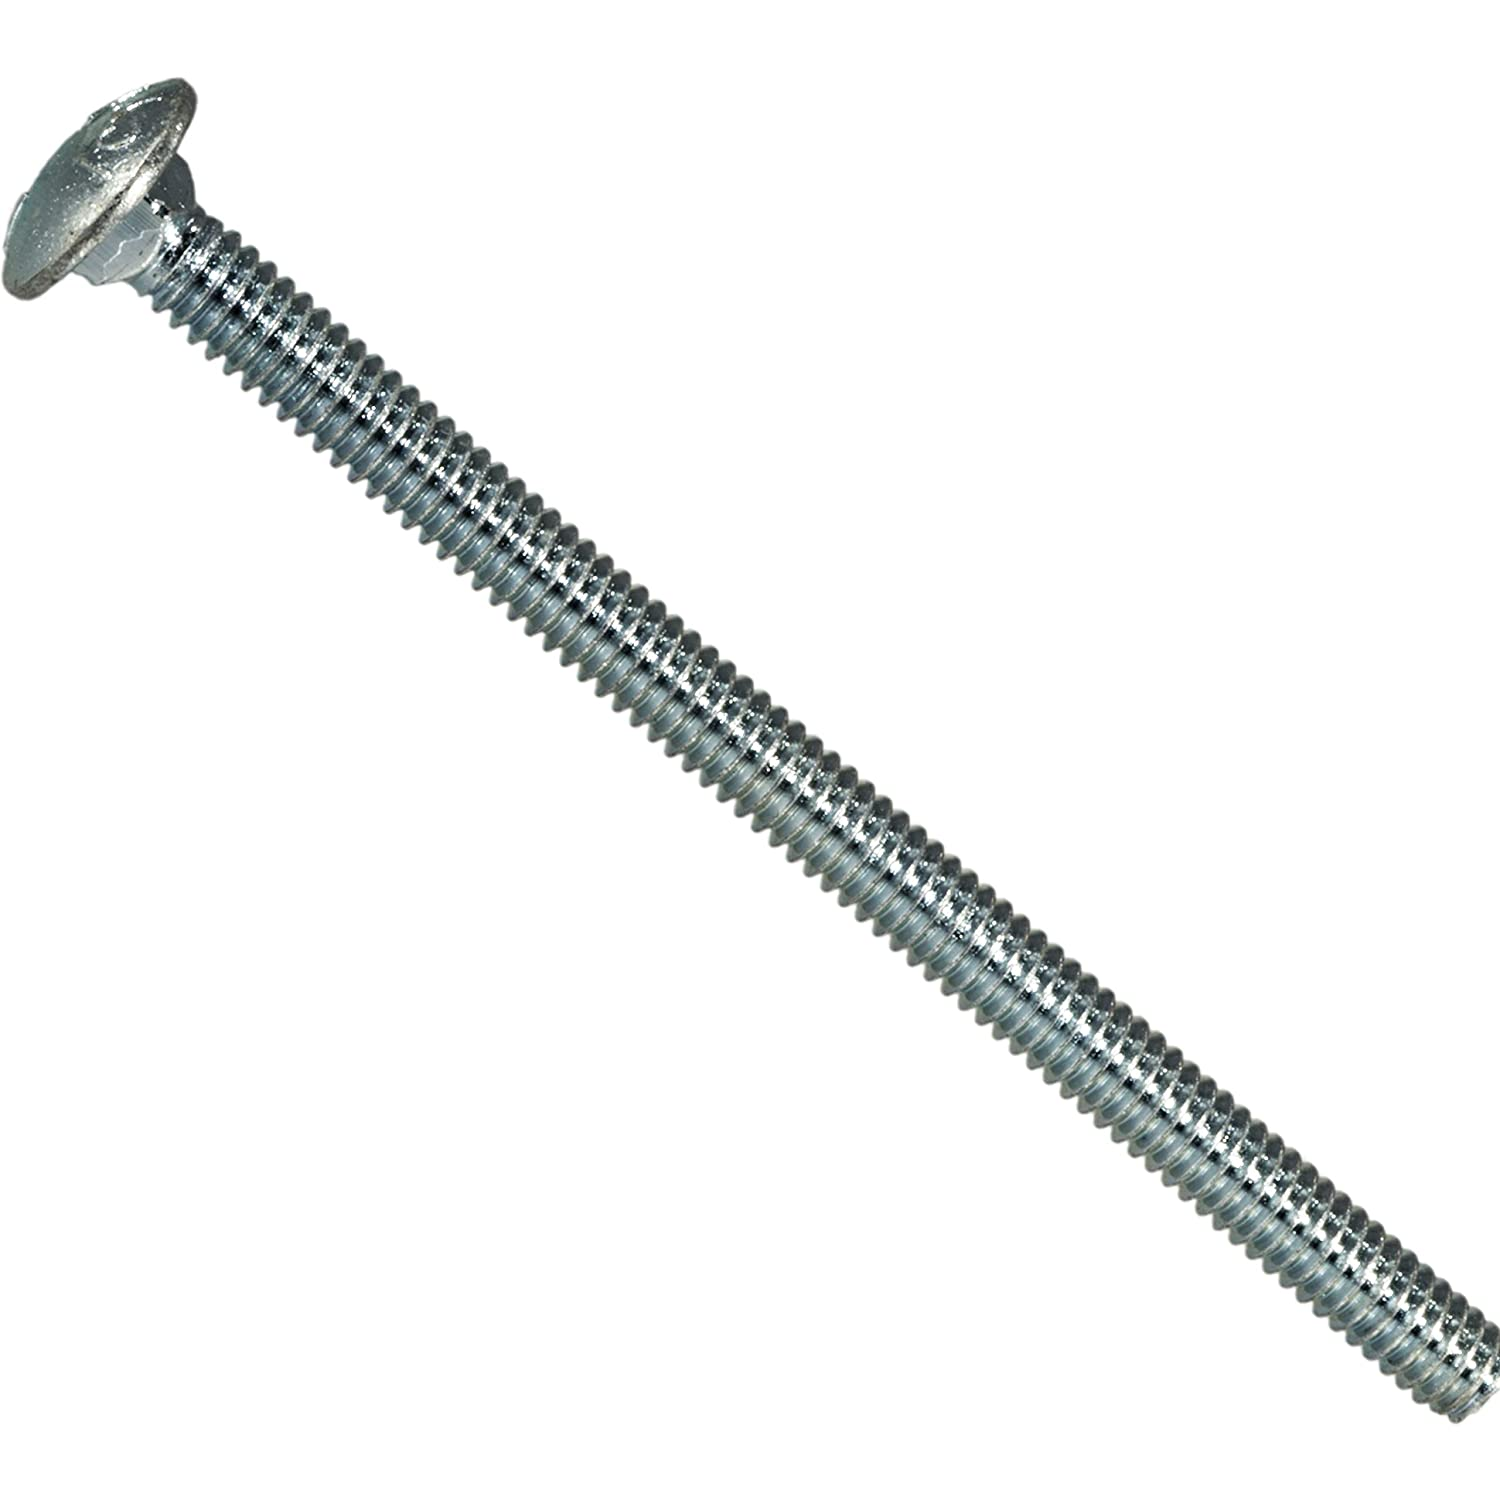 Hard-to-Find Fastener 014973453893 Carriage Bolts 1//2-13 x 1-1//2 Piece-8 Midwest Fastener Corp